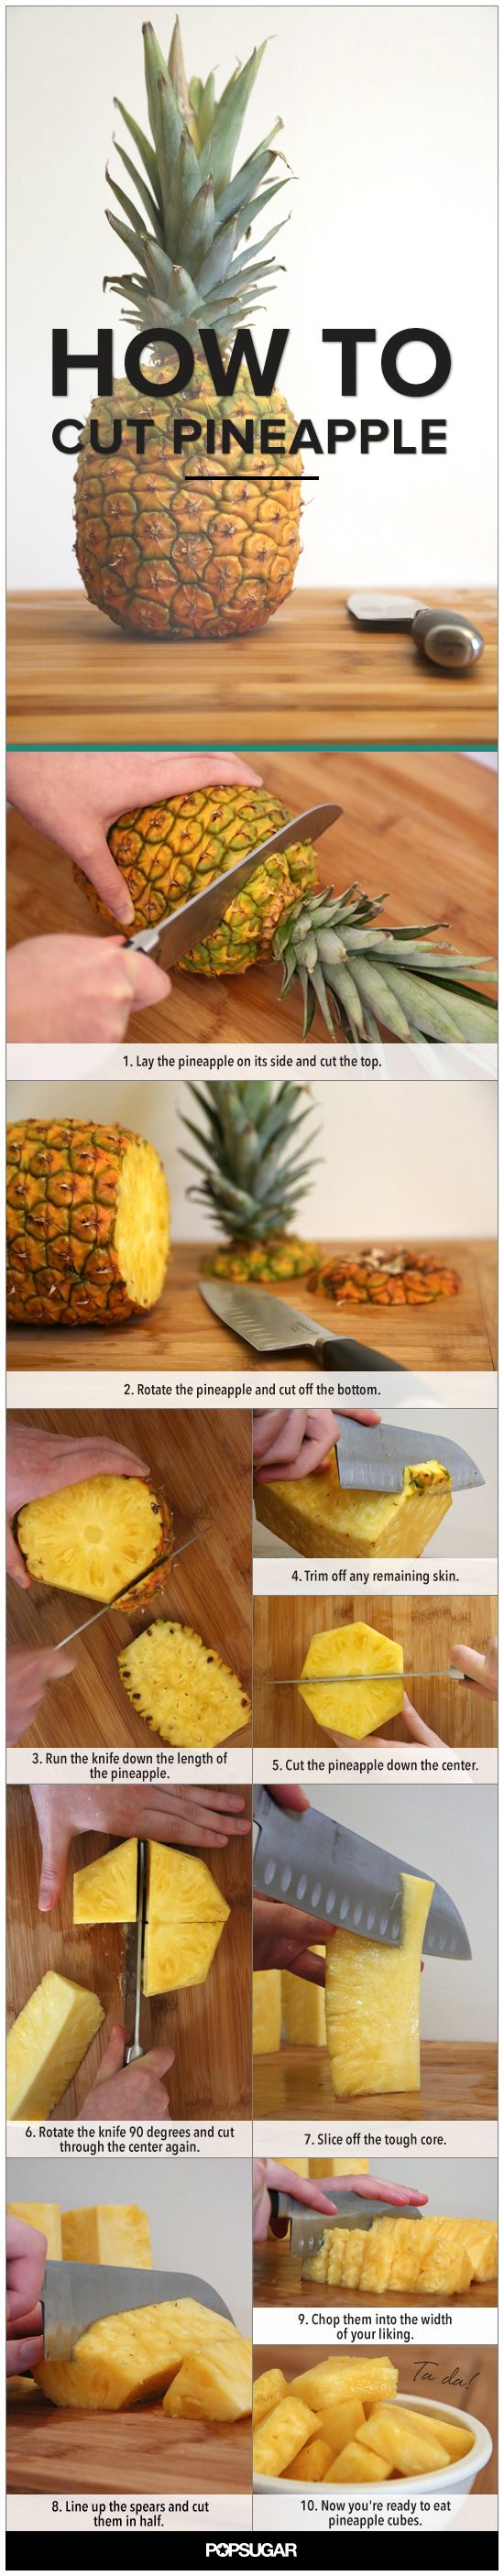 Pineapple Can Be Intimidating To Prep, But It's Time To Stop Buying Plastic  Containers Full Of Precut Fruit And Learn How To Properly Cut One